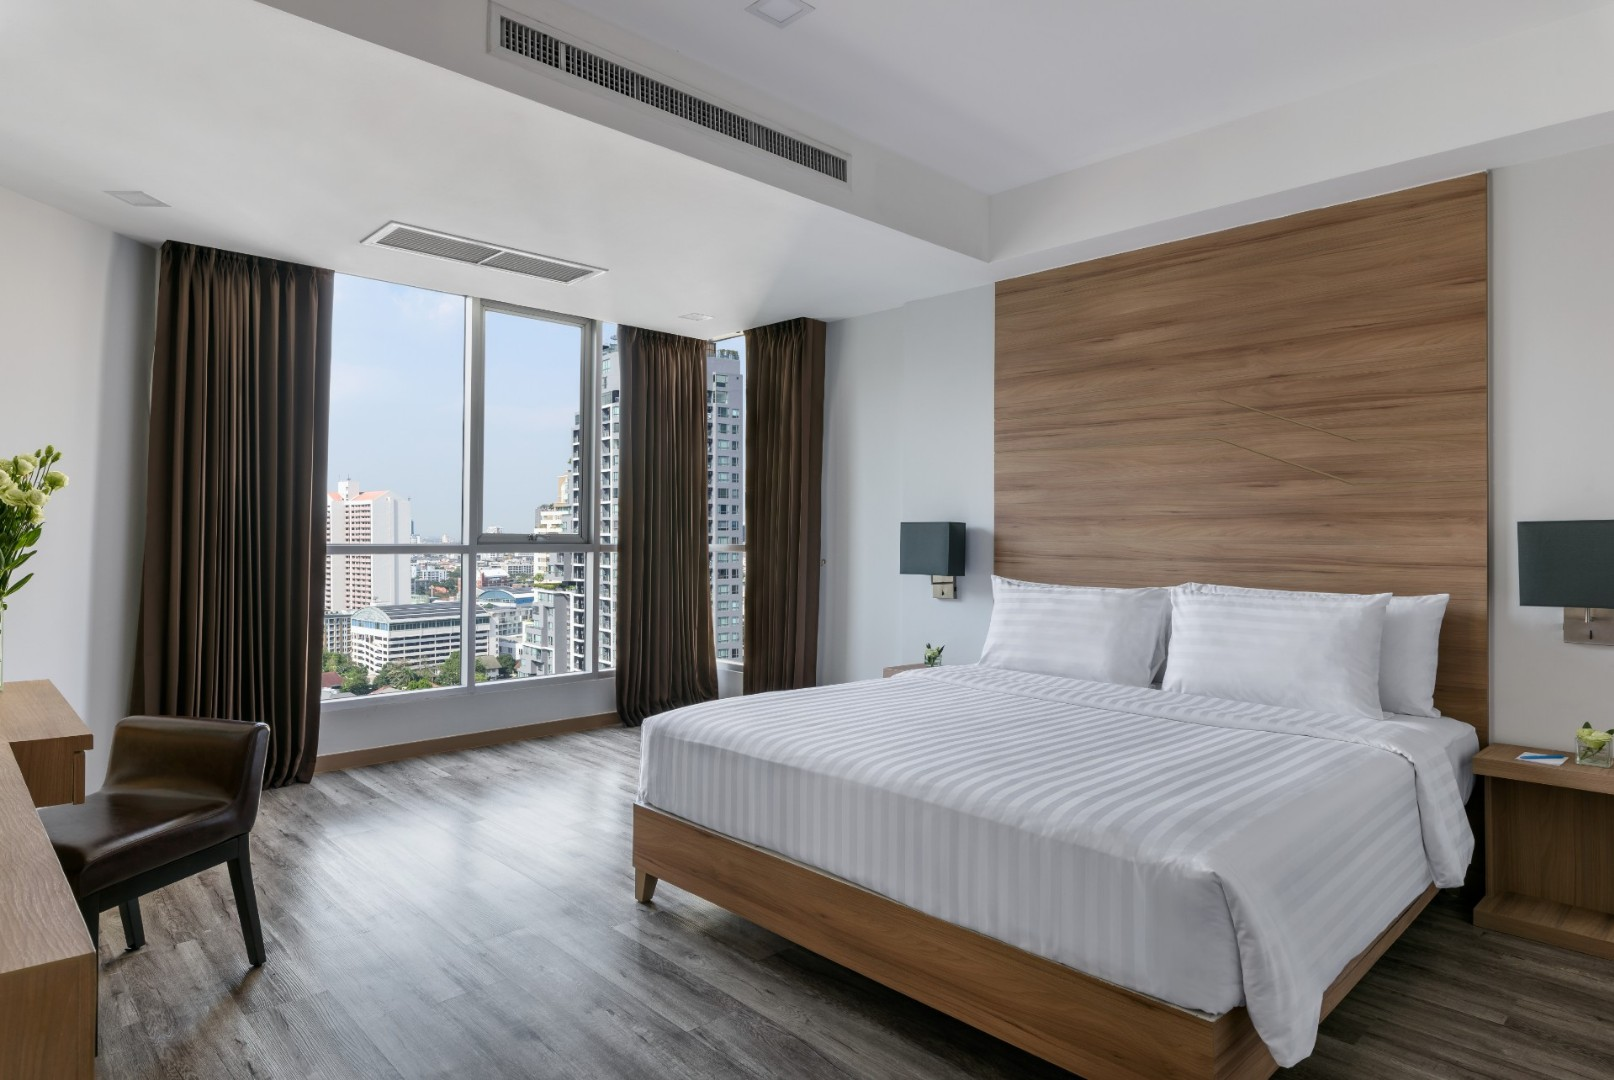 Adelphi Grande Sukhumvit Hotel - Grand One Bedroom Suite Bedroom-11.jpg